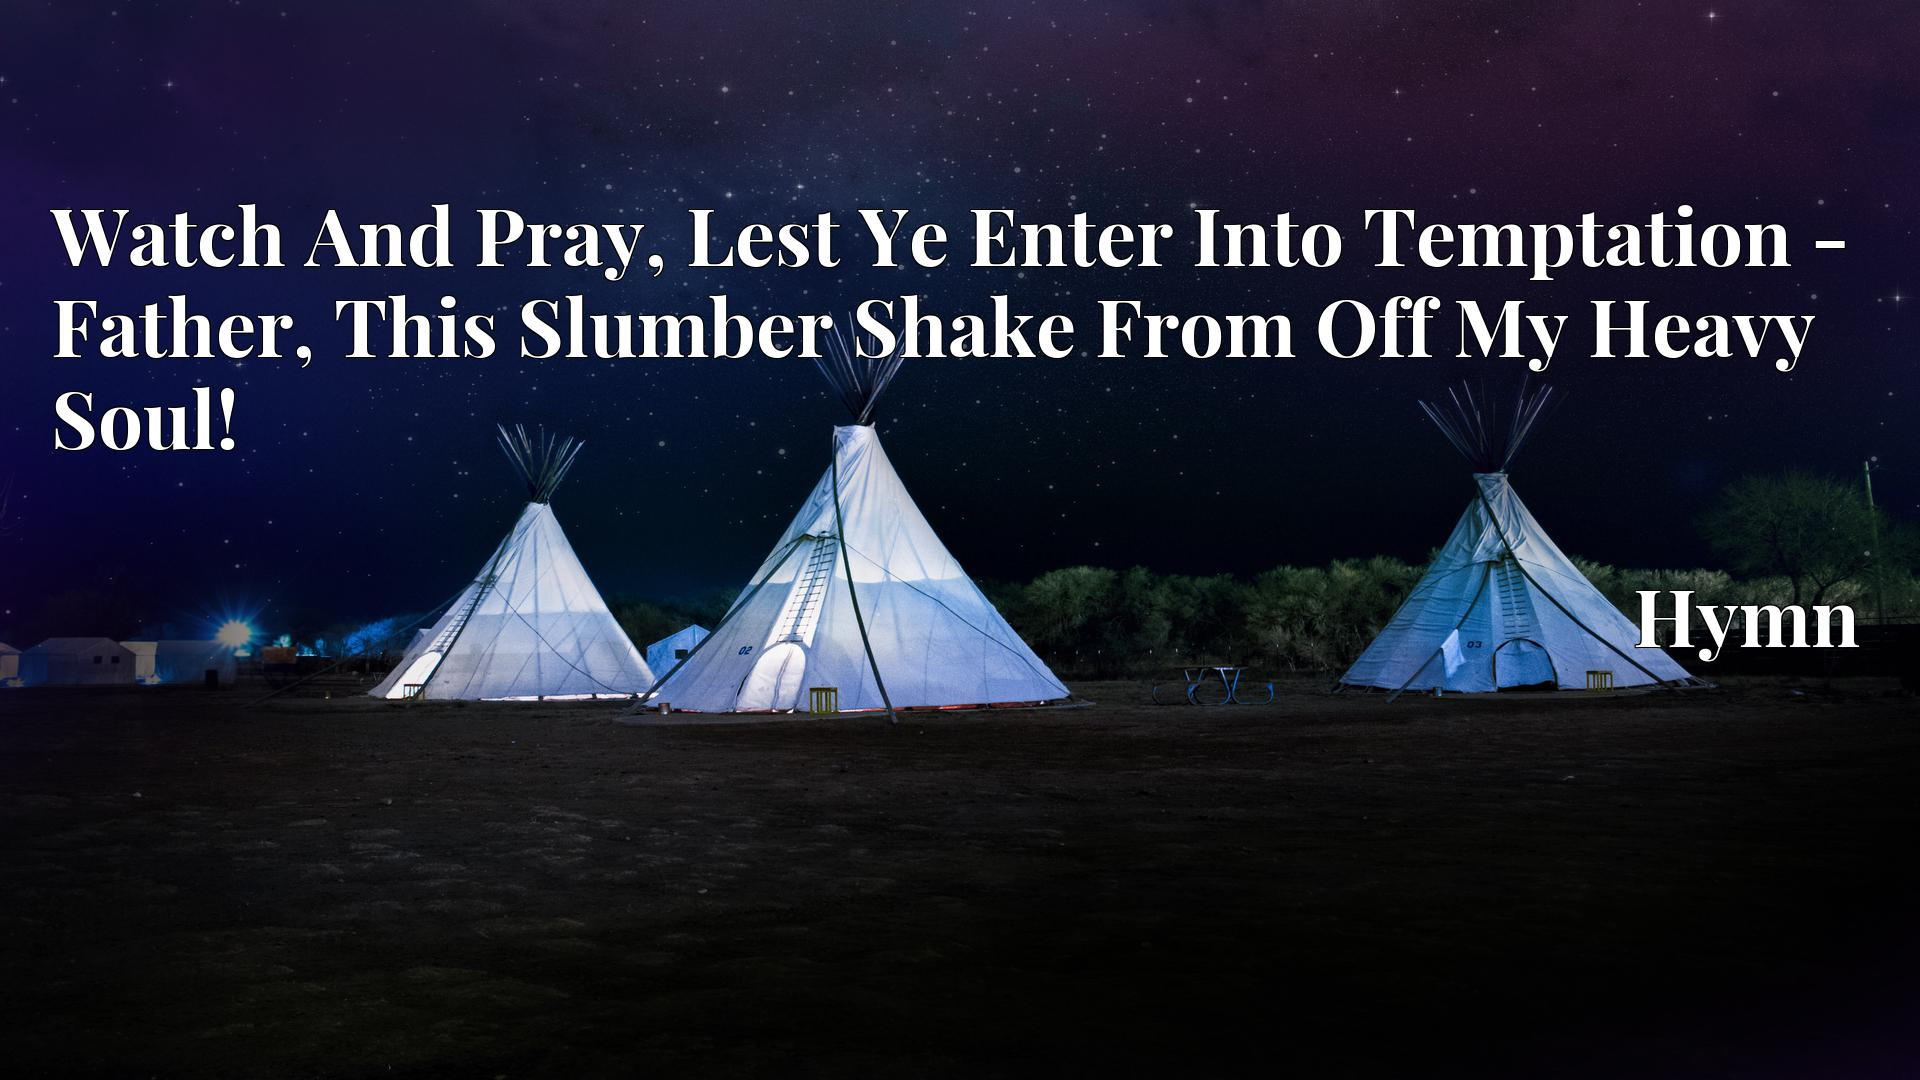 Watch And Pray, Lest Ye Enter Into Temptation - Father, This Slumber Shake From Off My Heavy Soul! - Hymn